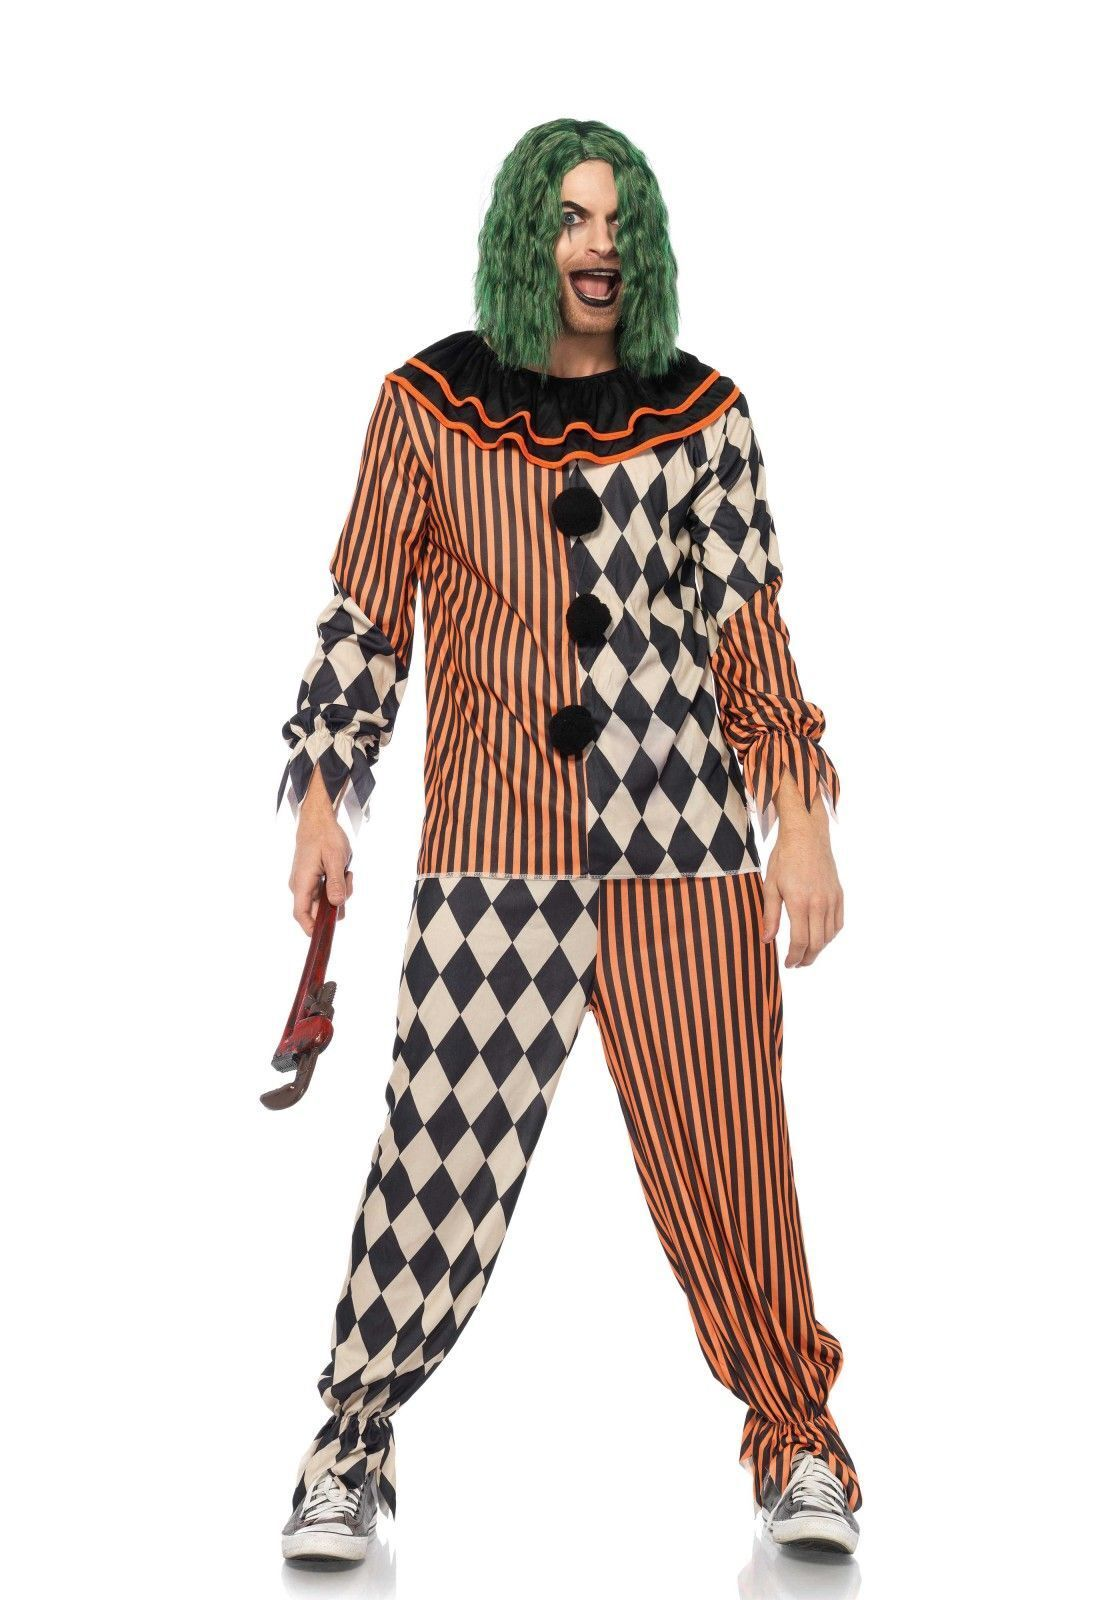 Creepy Circus Clown enge clown halloween